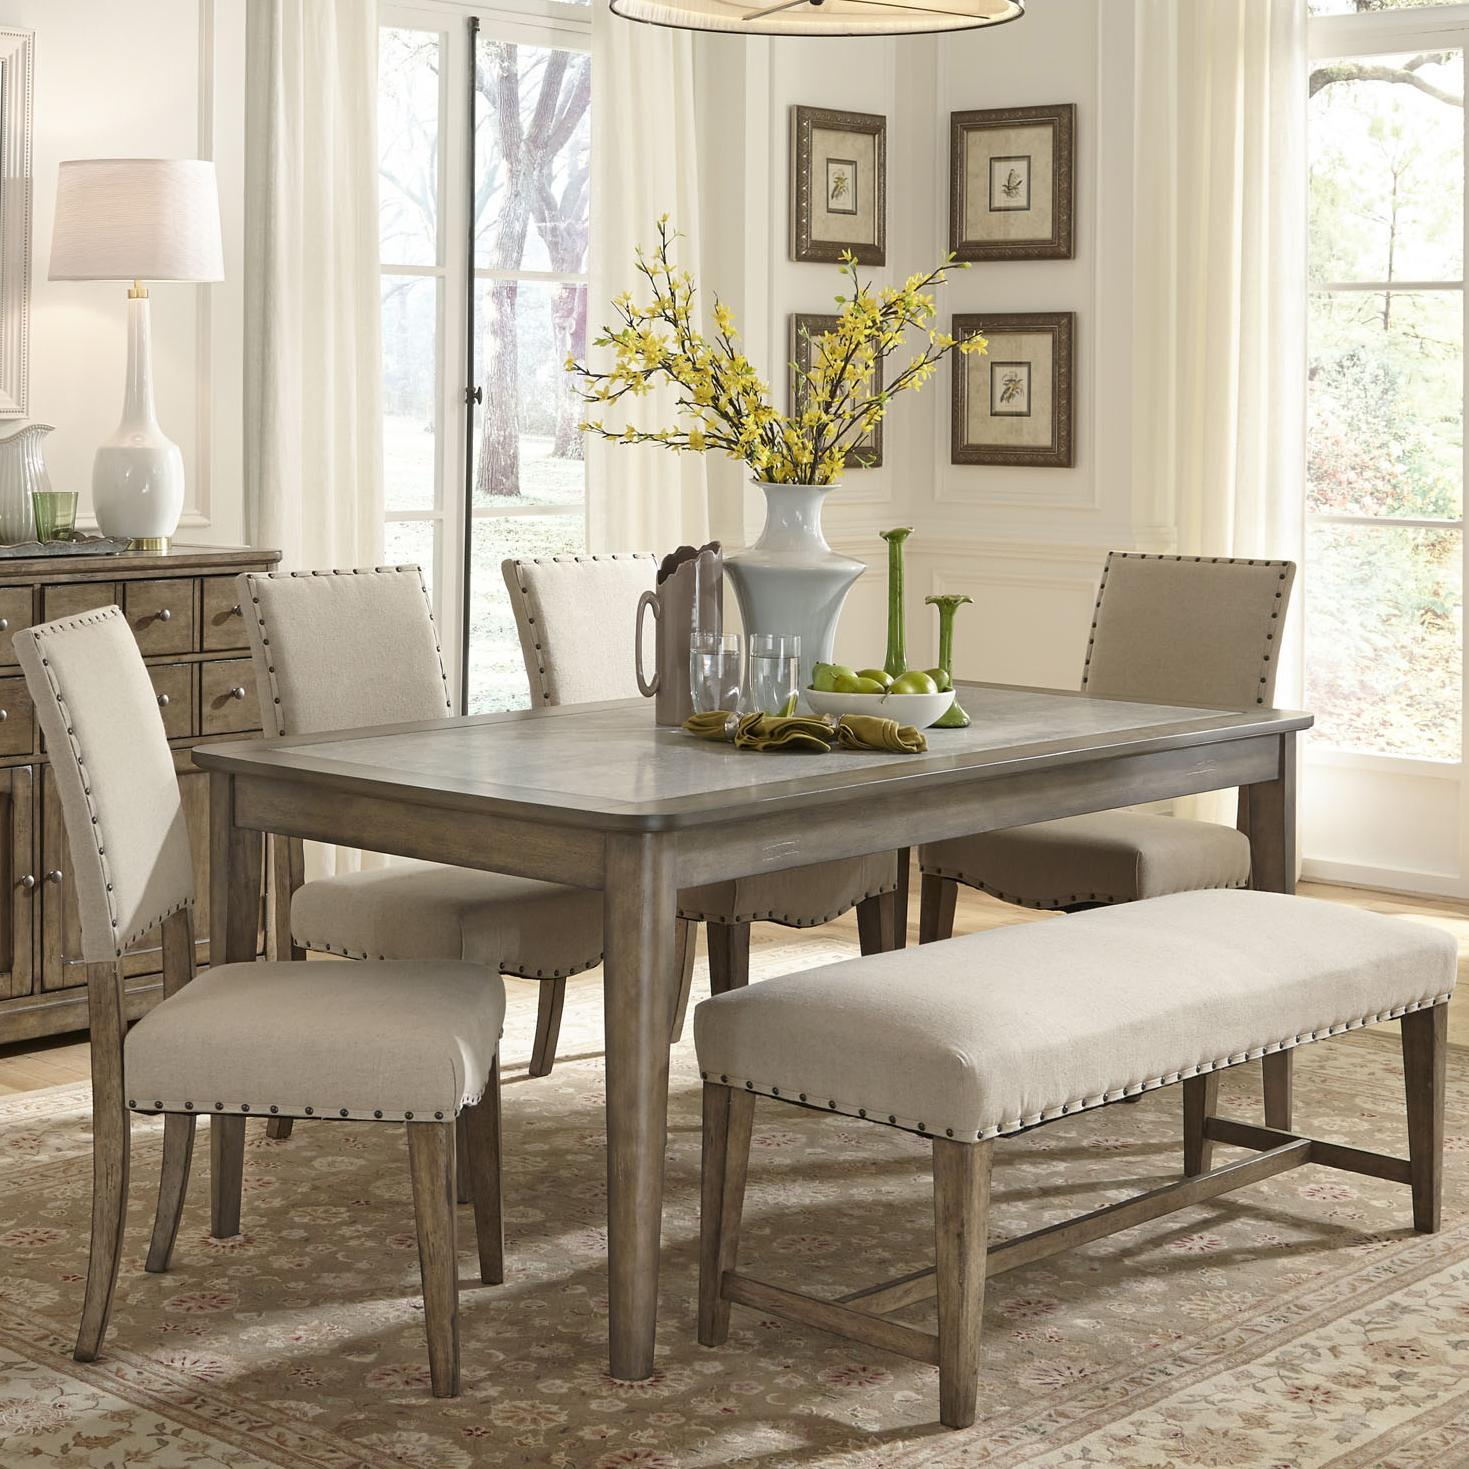 kitchen table and chairs Liberty Furniture Weatherford 6 Piece Dining Table and Chairs Set Item Number